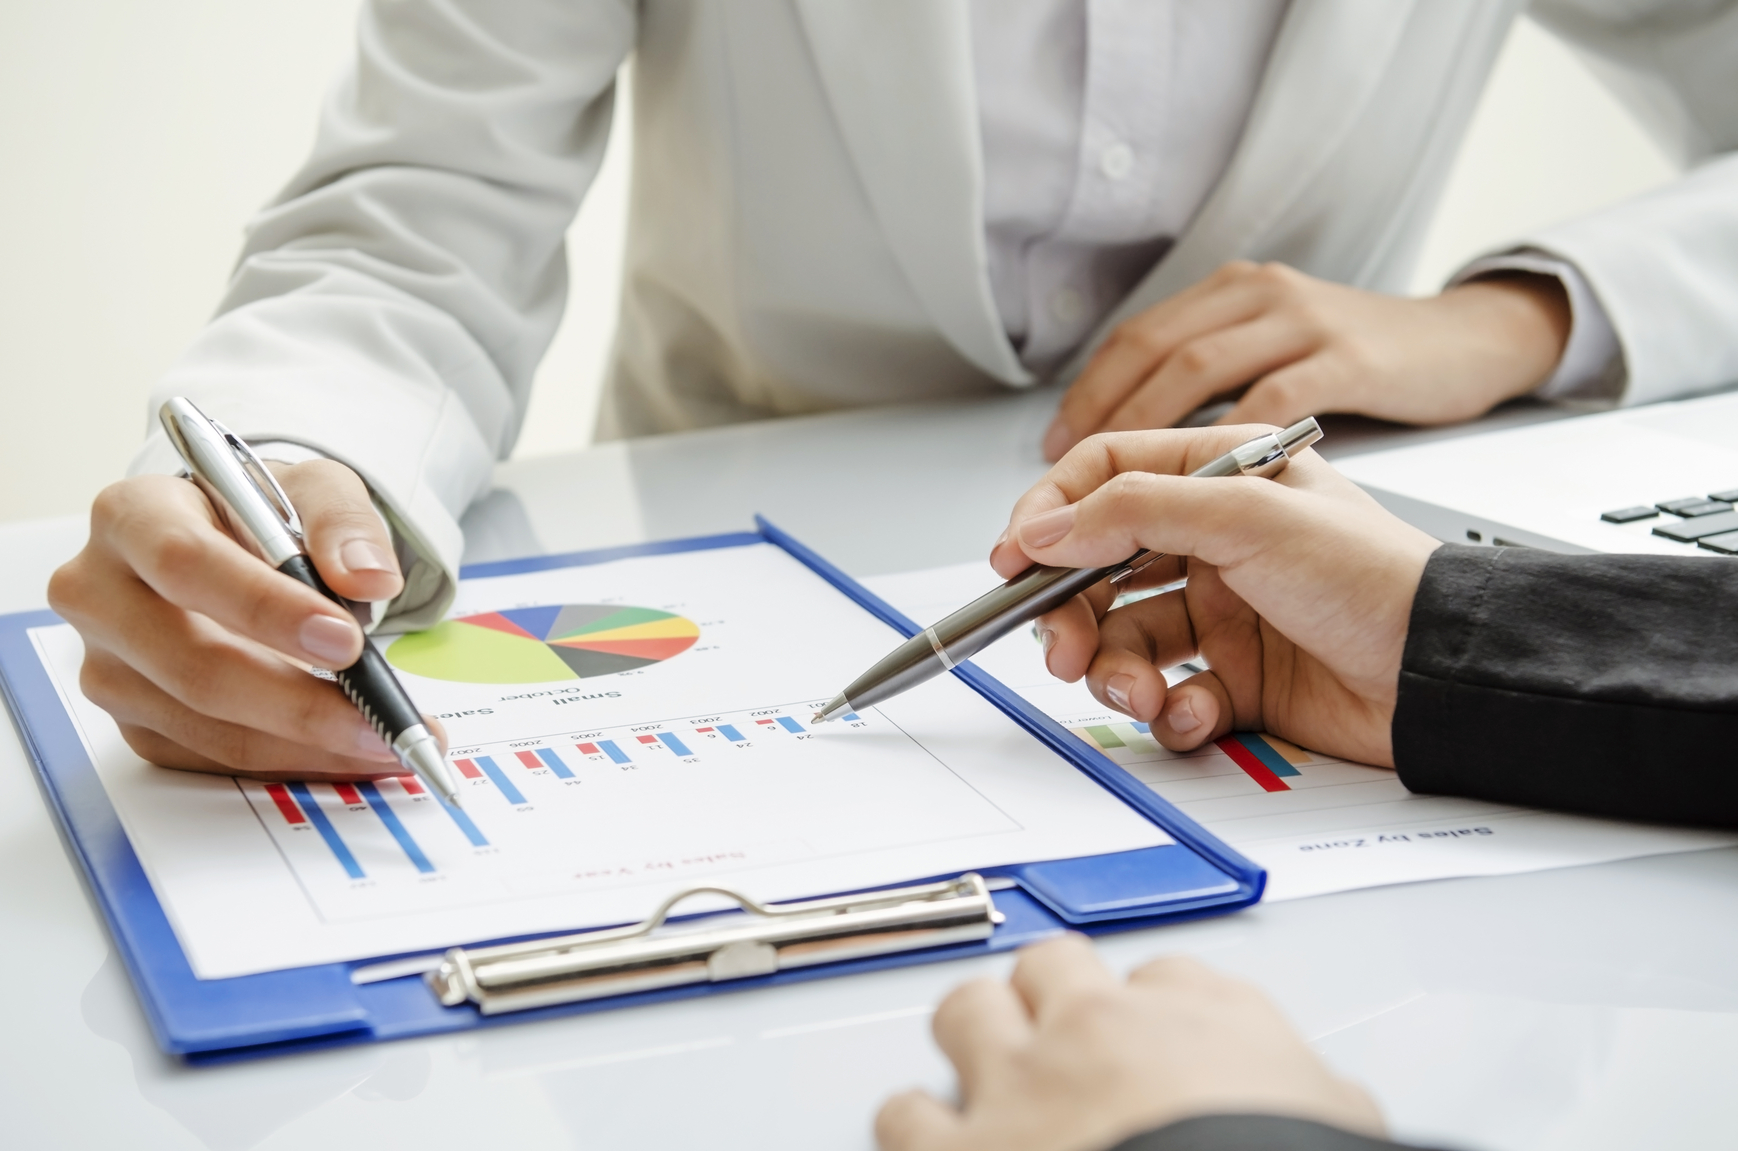 Use bookkeeping to create processes not just enter data